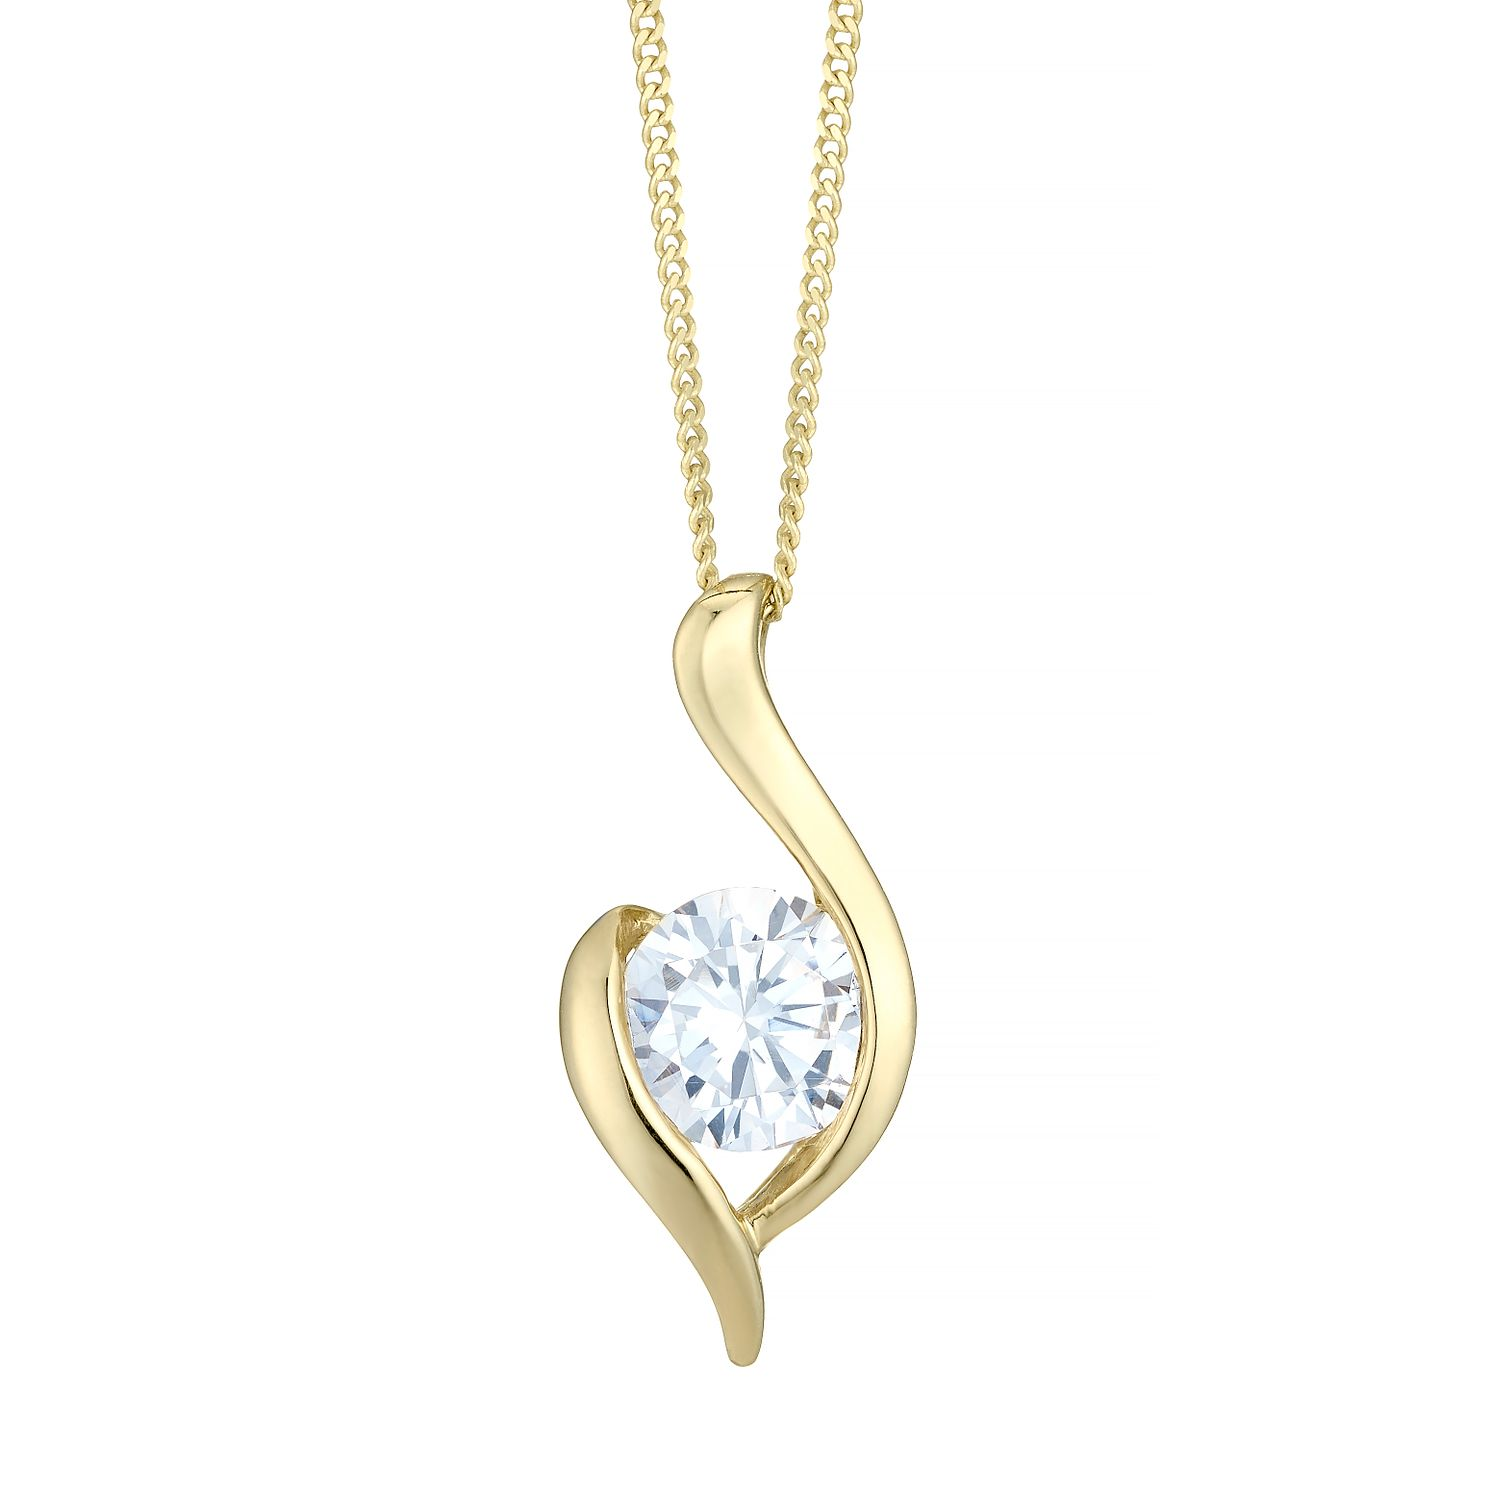 9ct Gold Cubic Zirconia Pendant - Product number 4487605